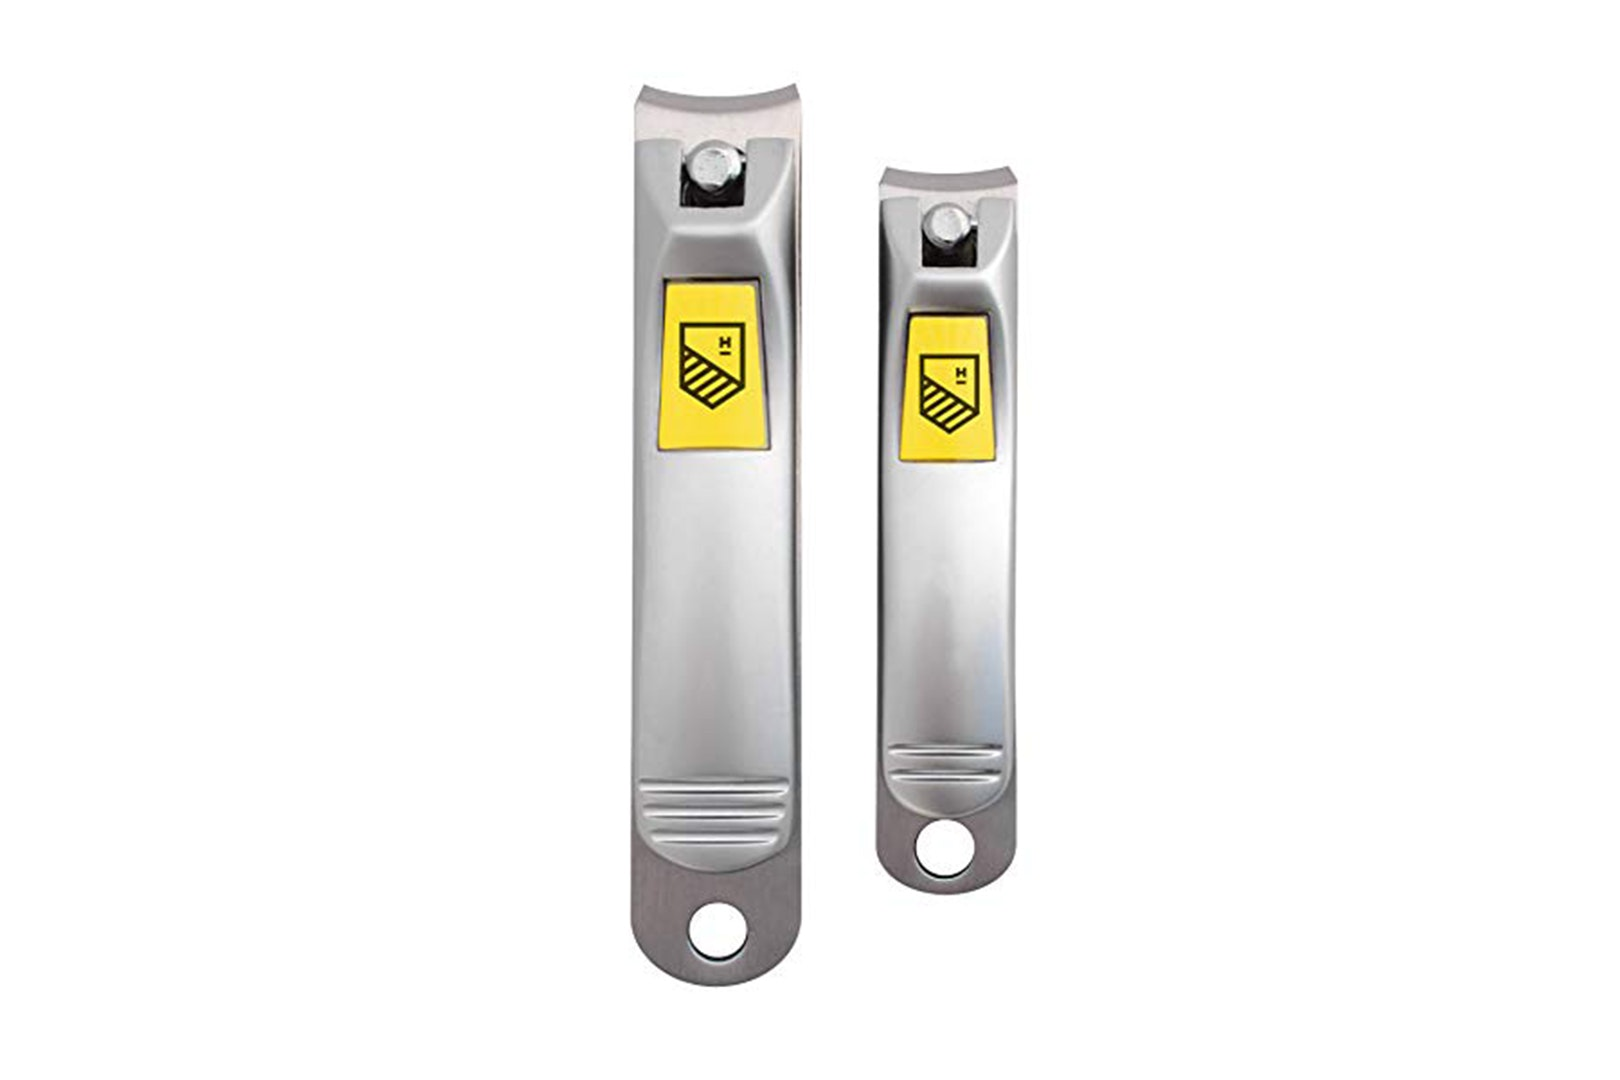 Amazon nail clippers 1